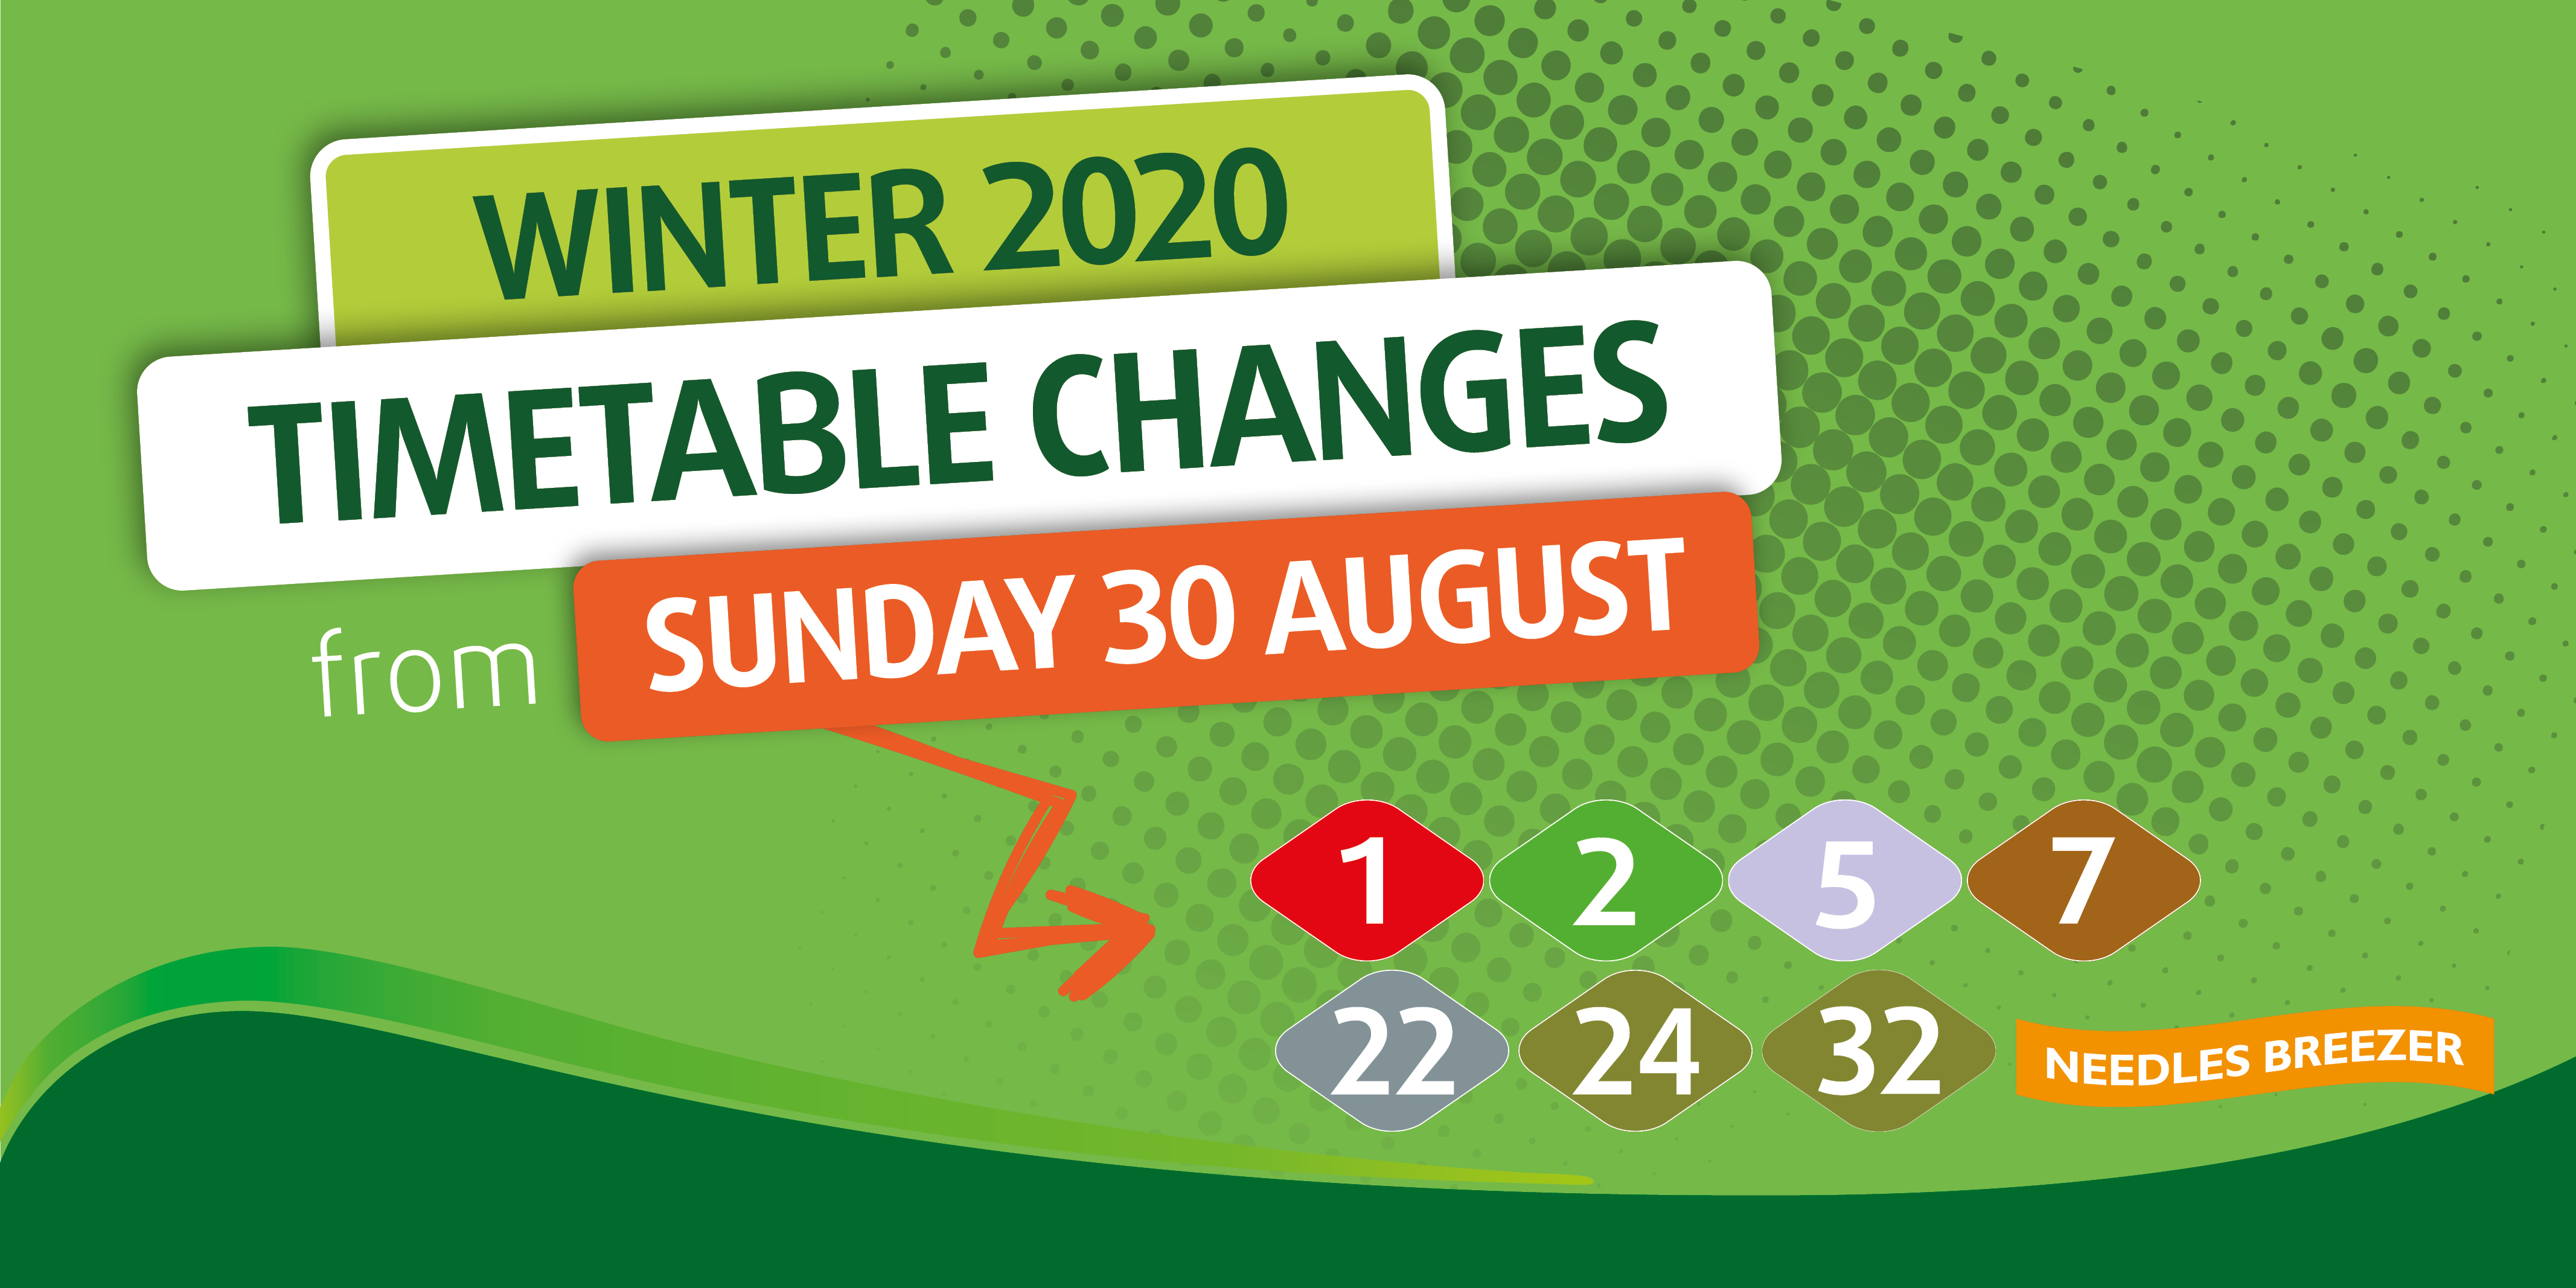 illustration with text winter 2020 timetable changes from sunday 30 august